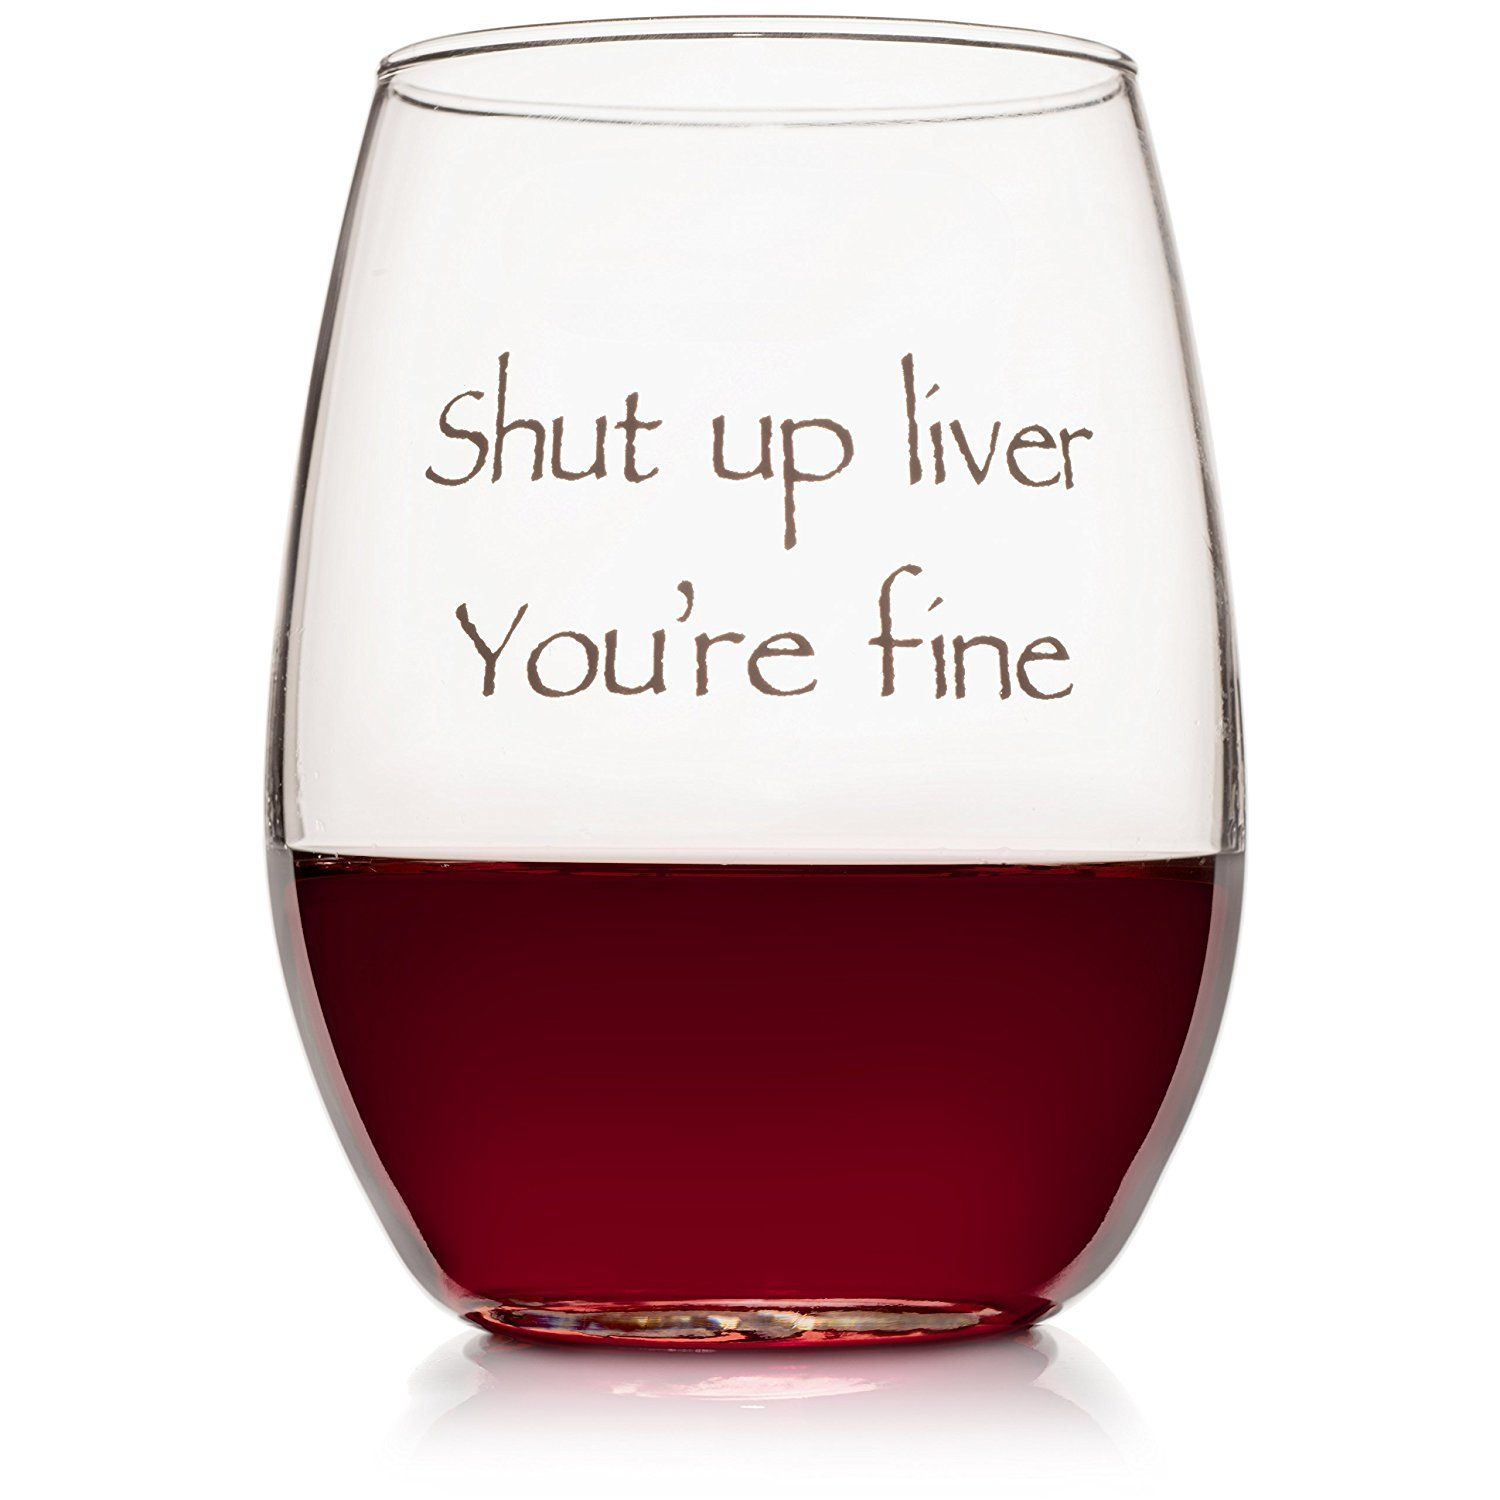 Funny Stemless Wine Glass Forget Every Worries When You Are In Mood Of Drinking Some Wine In This Fu Funny Wine Glass Funny Wine Glasses Wine Glass Sayings